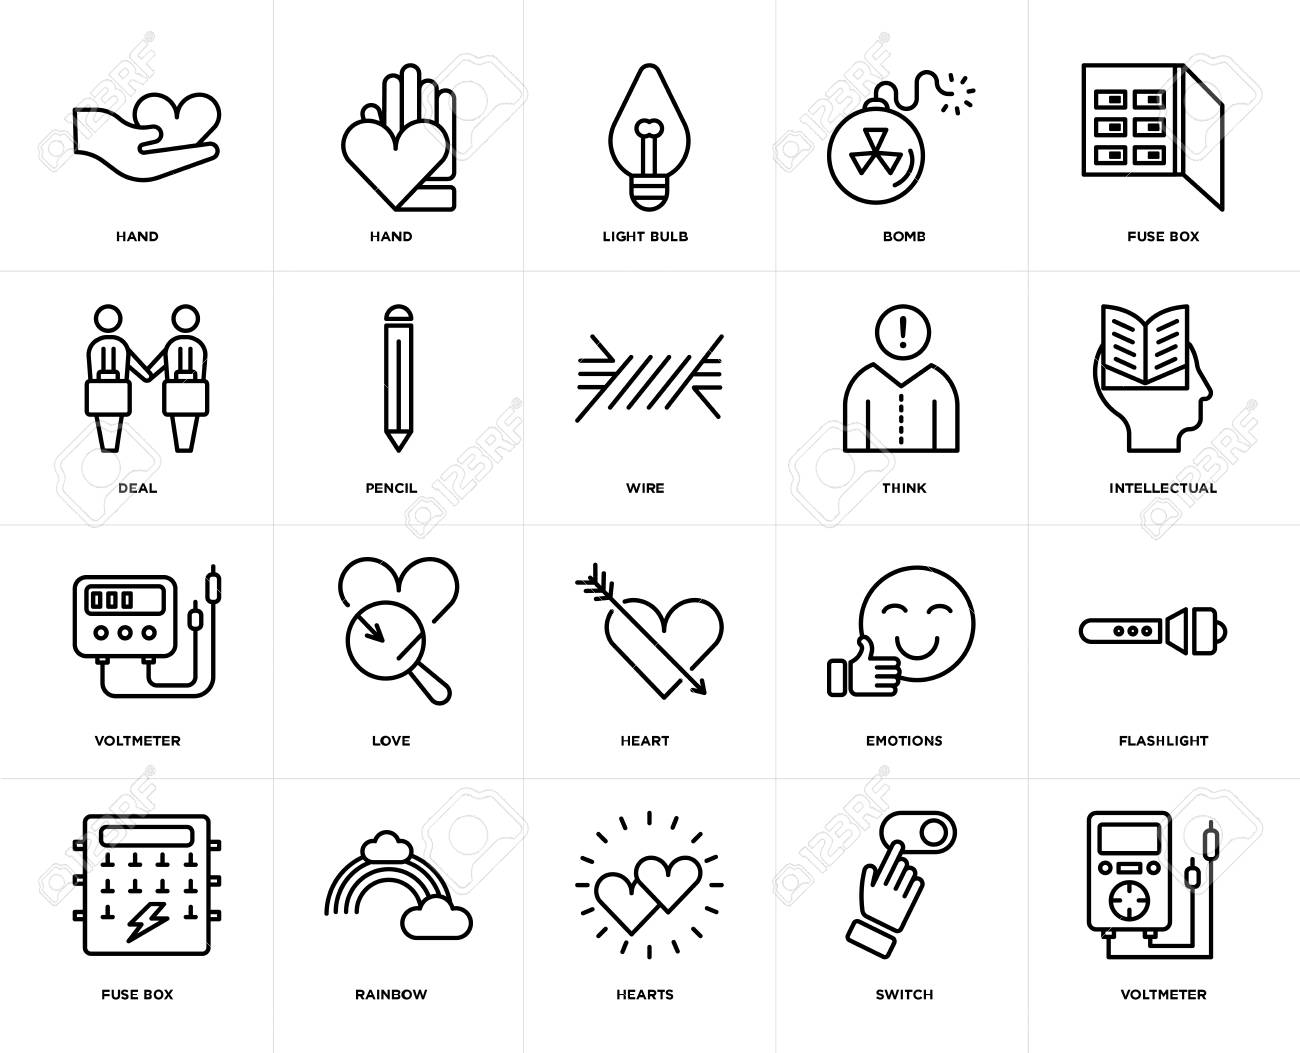 hight resolution of set of 20 icons such as voltmeter switch hearts rainbow fuse box